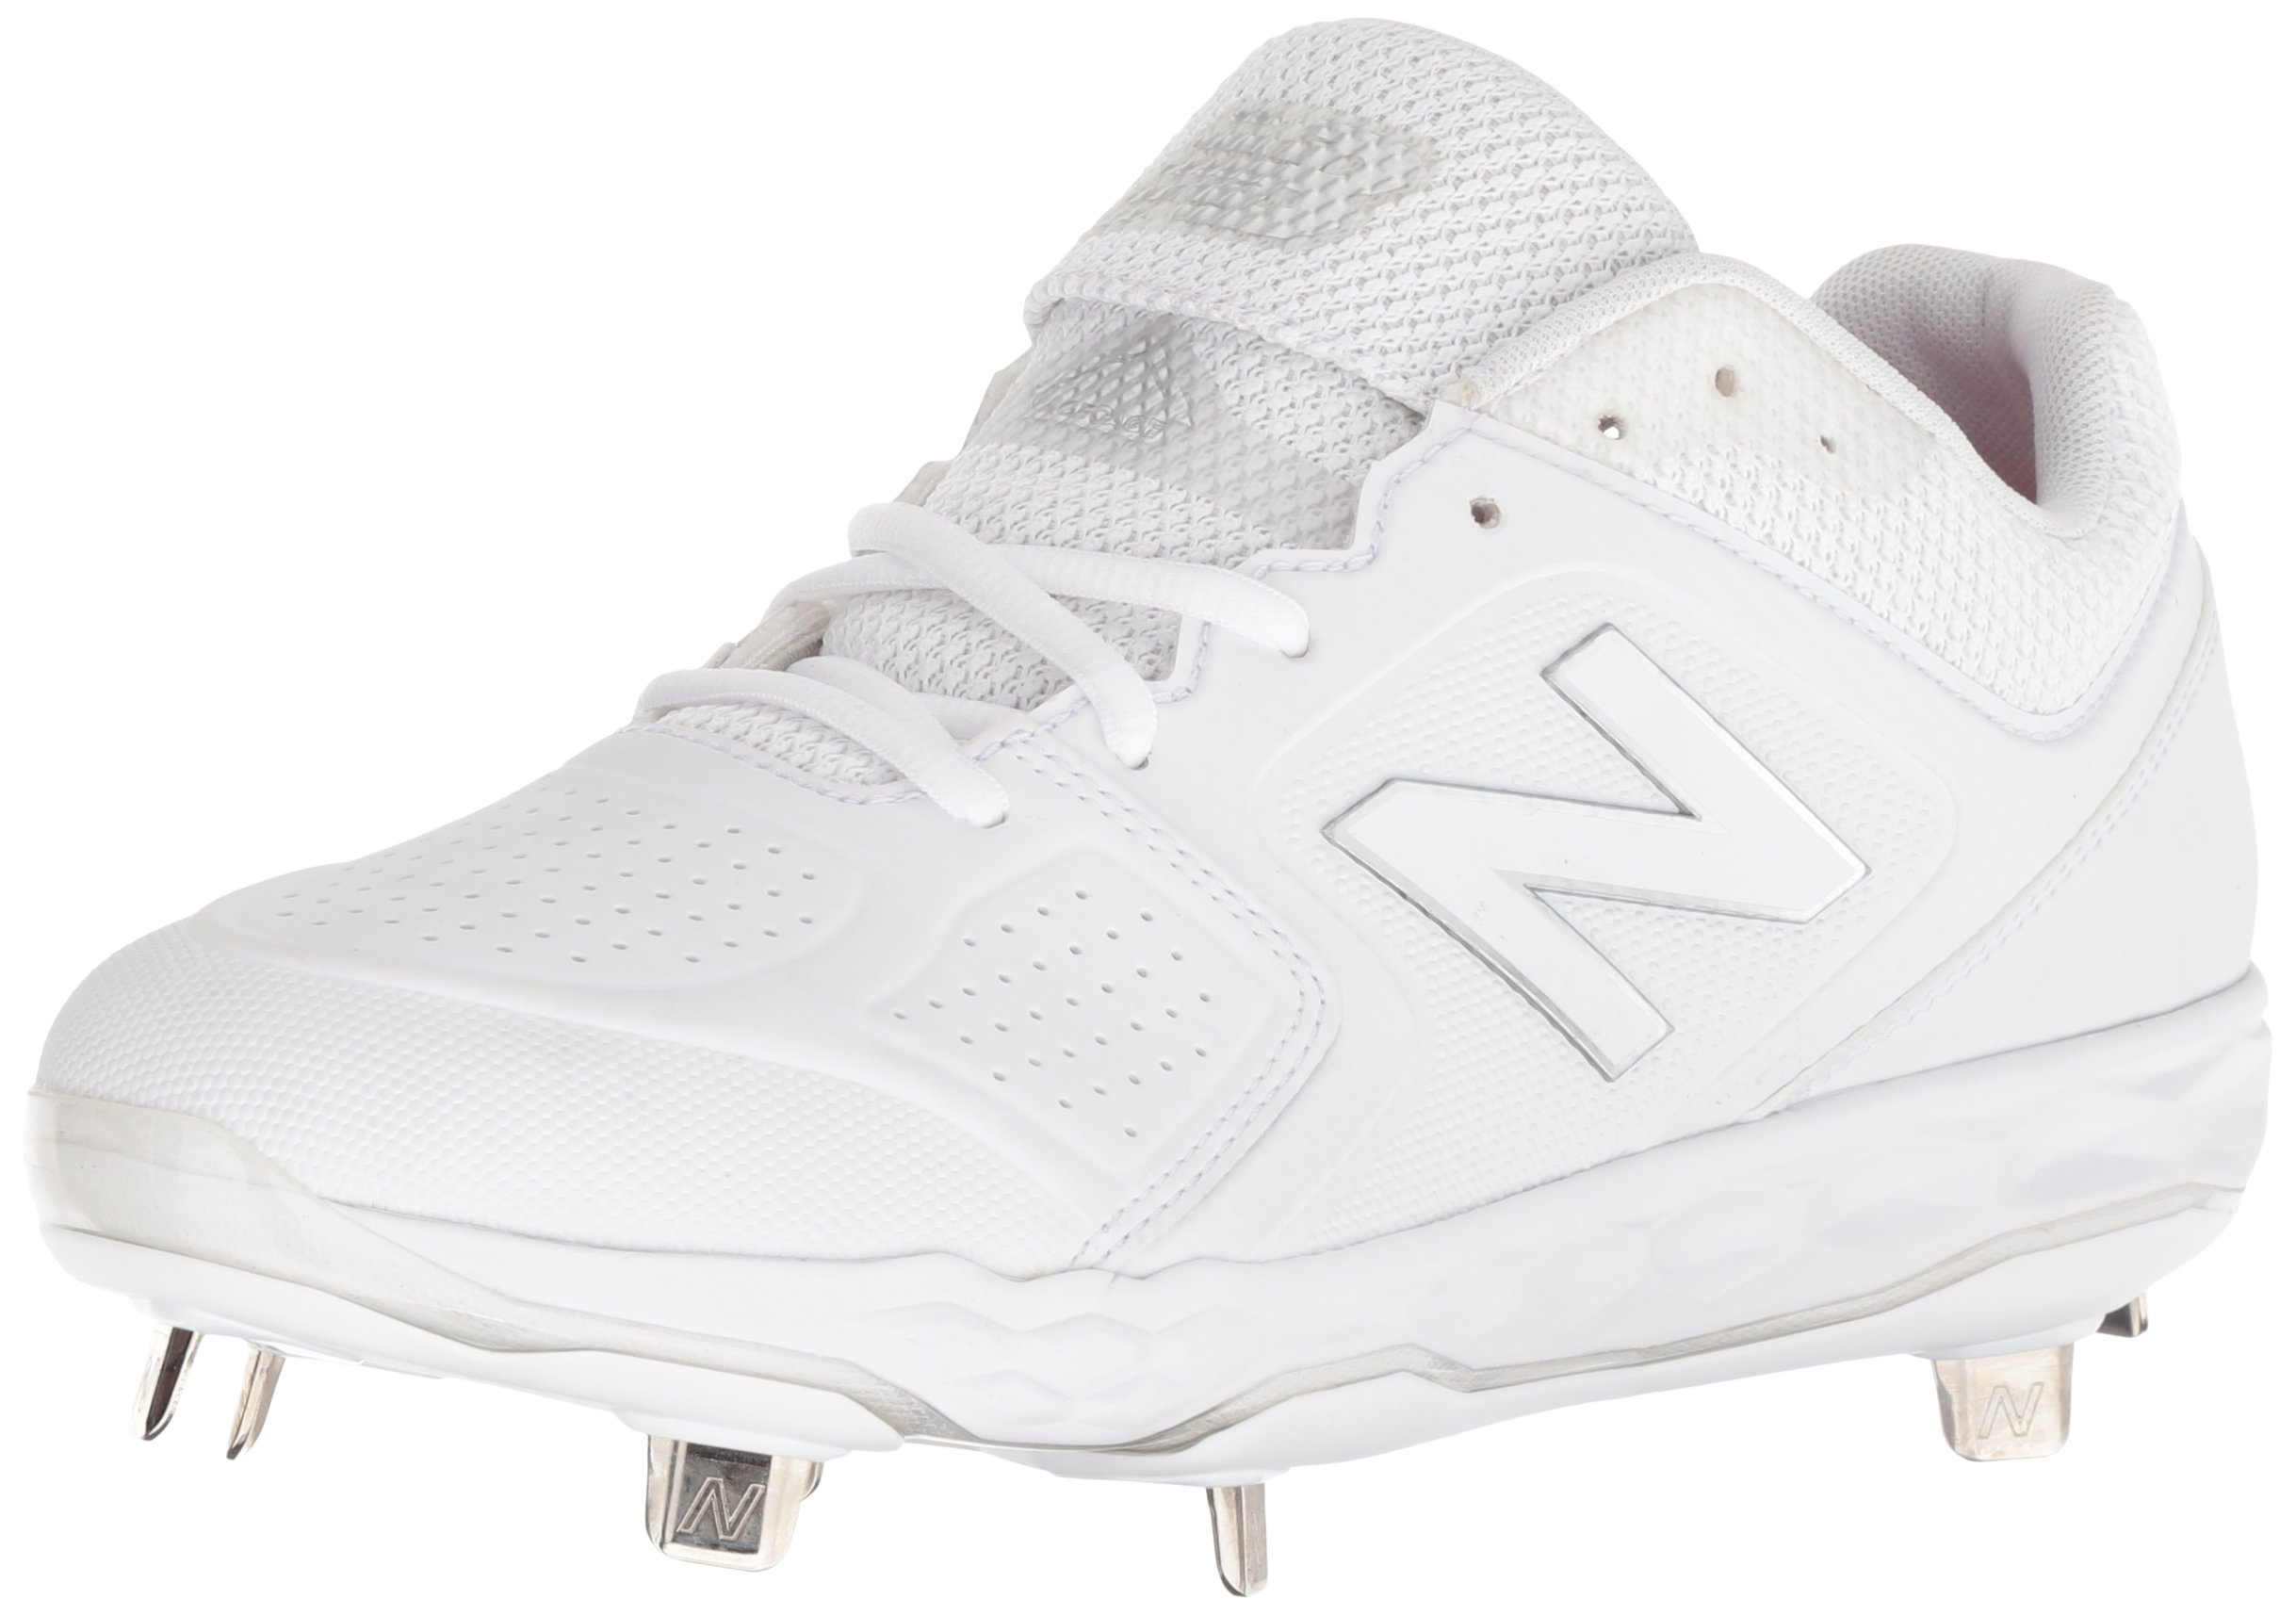 New Balance Women's Velo V1 Metal Softball Shoe, White, 8 B US by New Balance